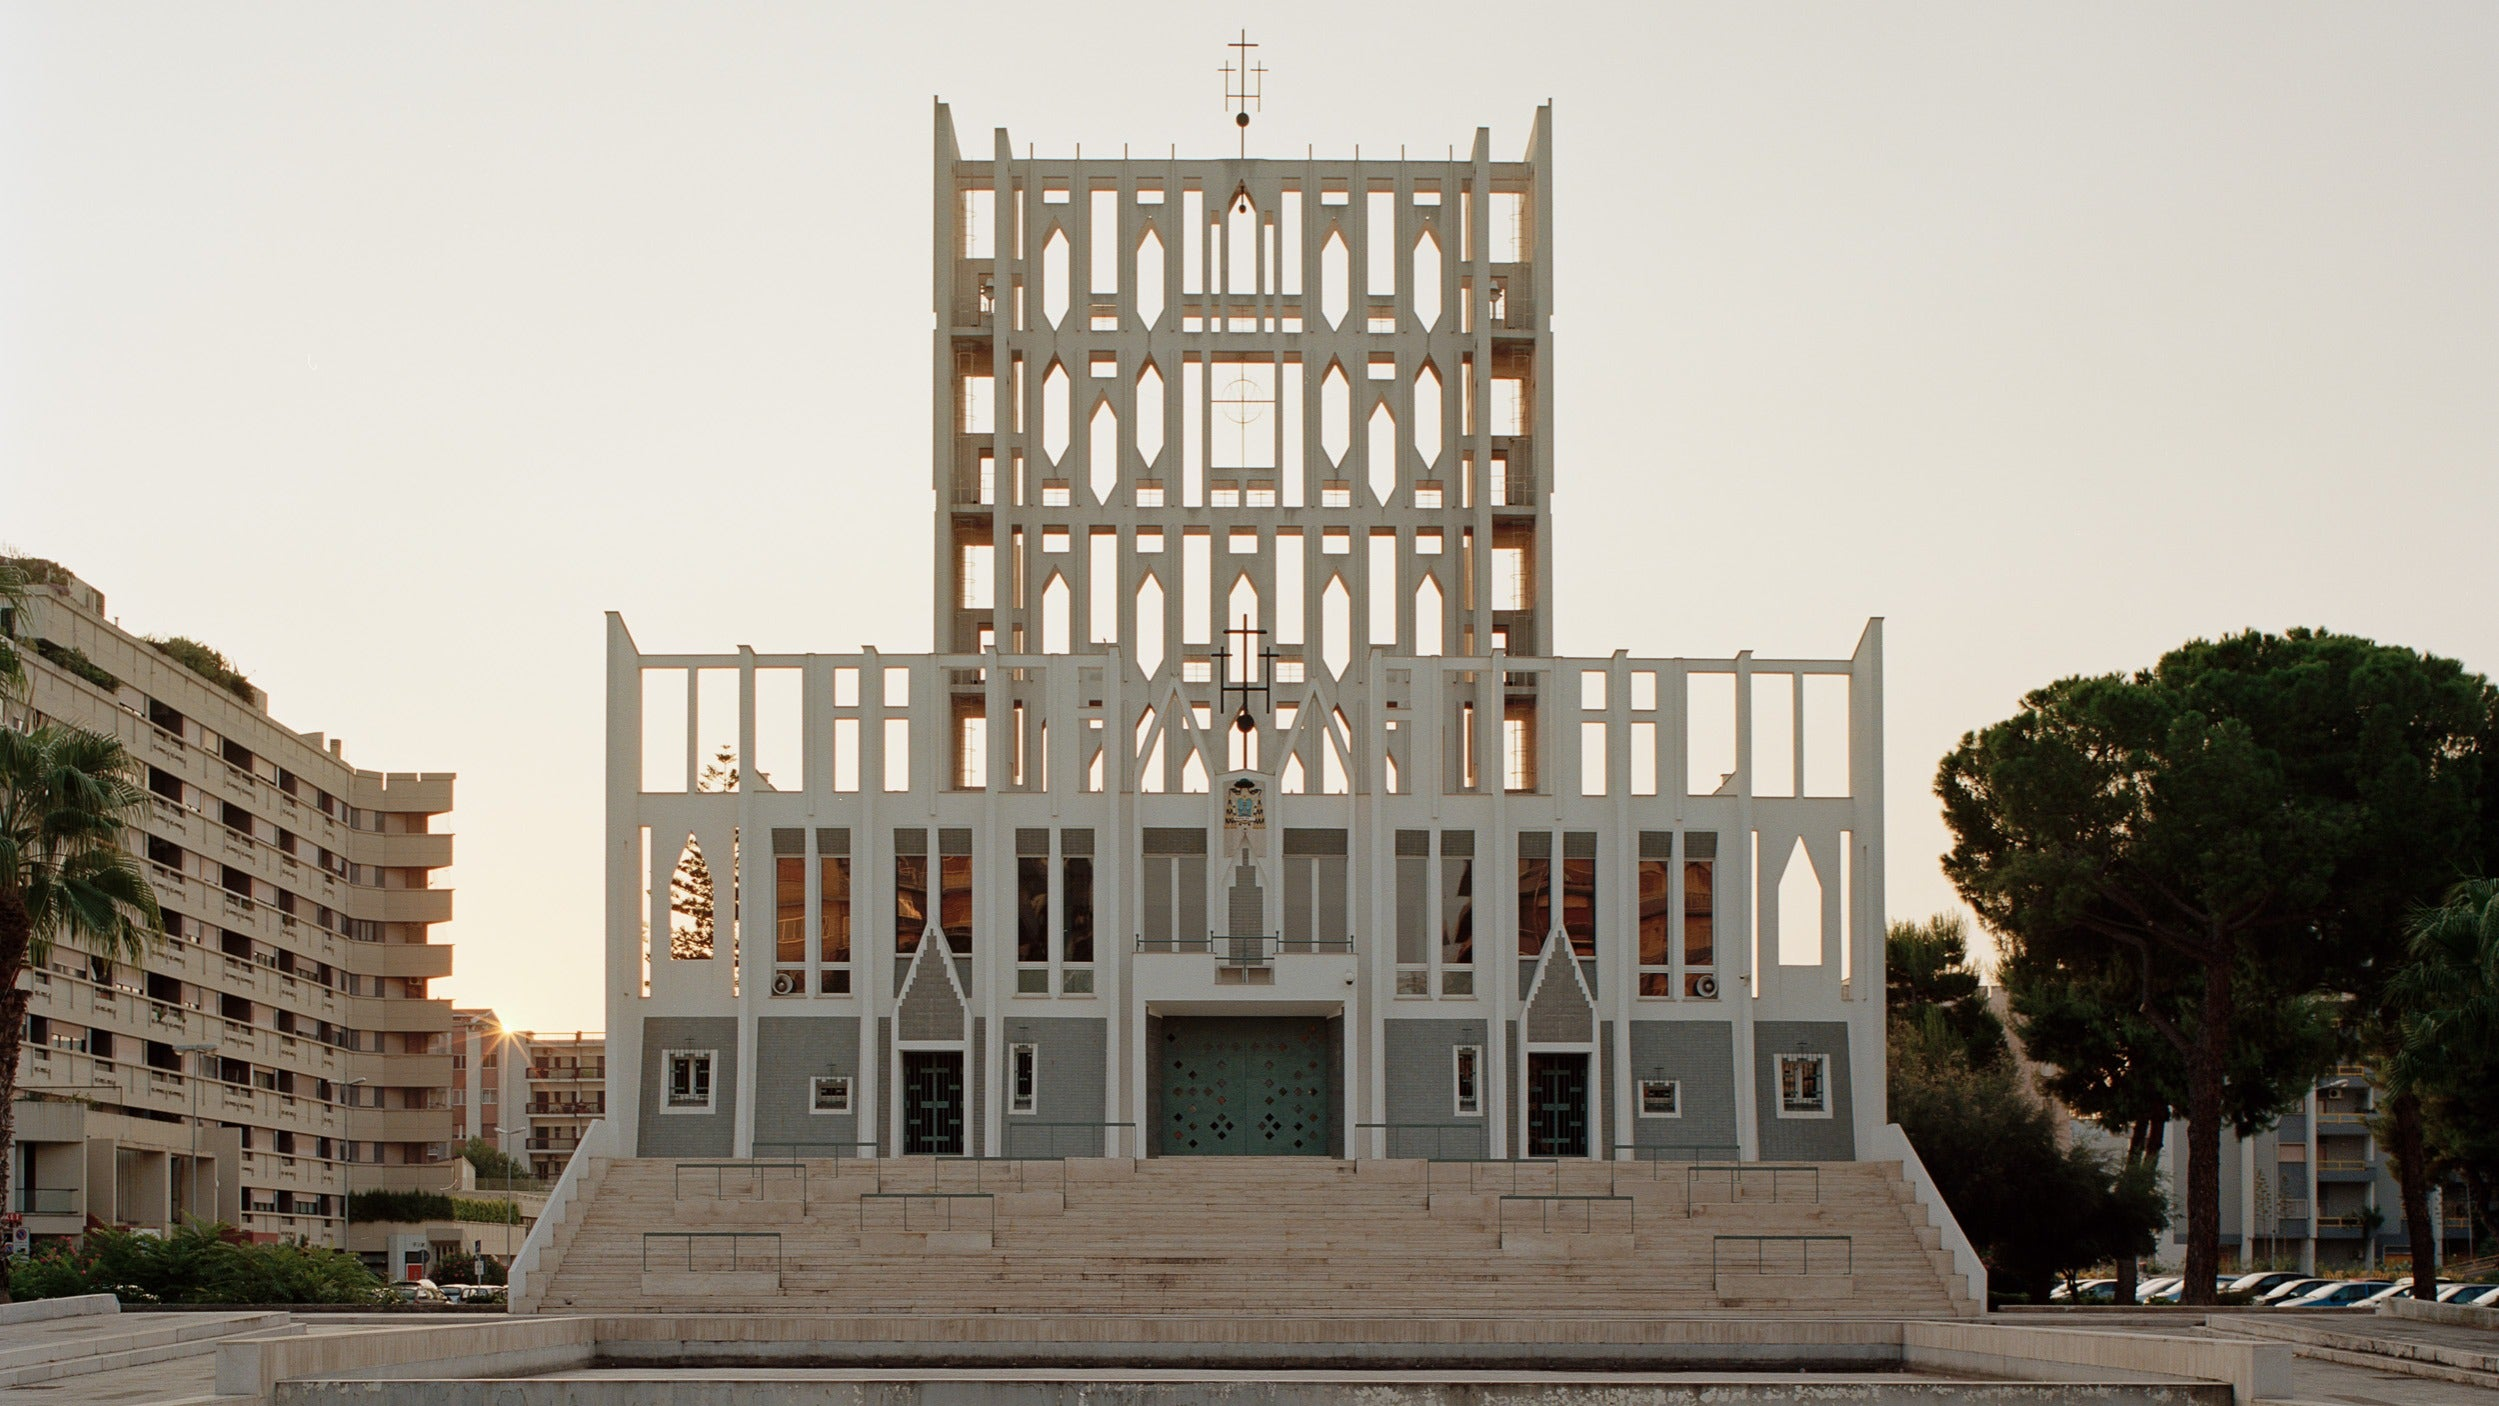 Concattedrale Gran Madre di Dio cathedral in Taranto in The Eclectic Life and Work of Gio Ponti for A Collected Man London